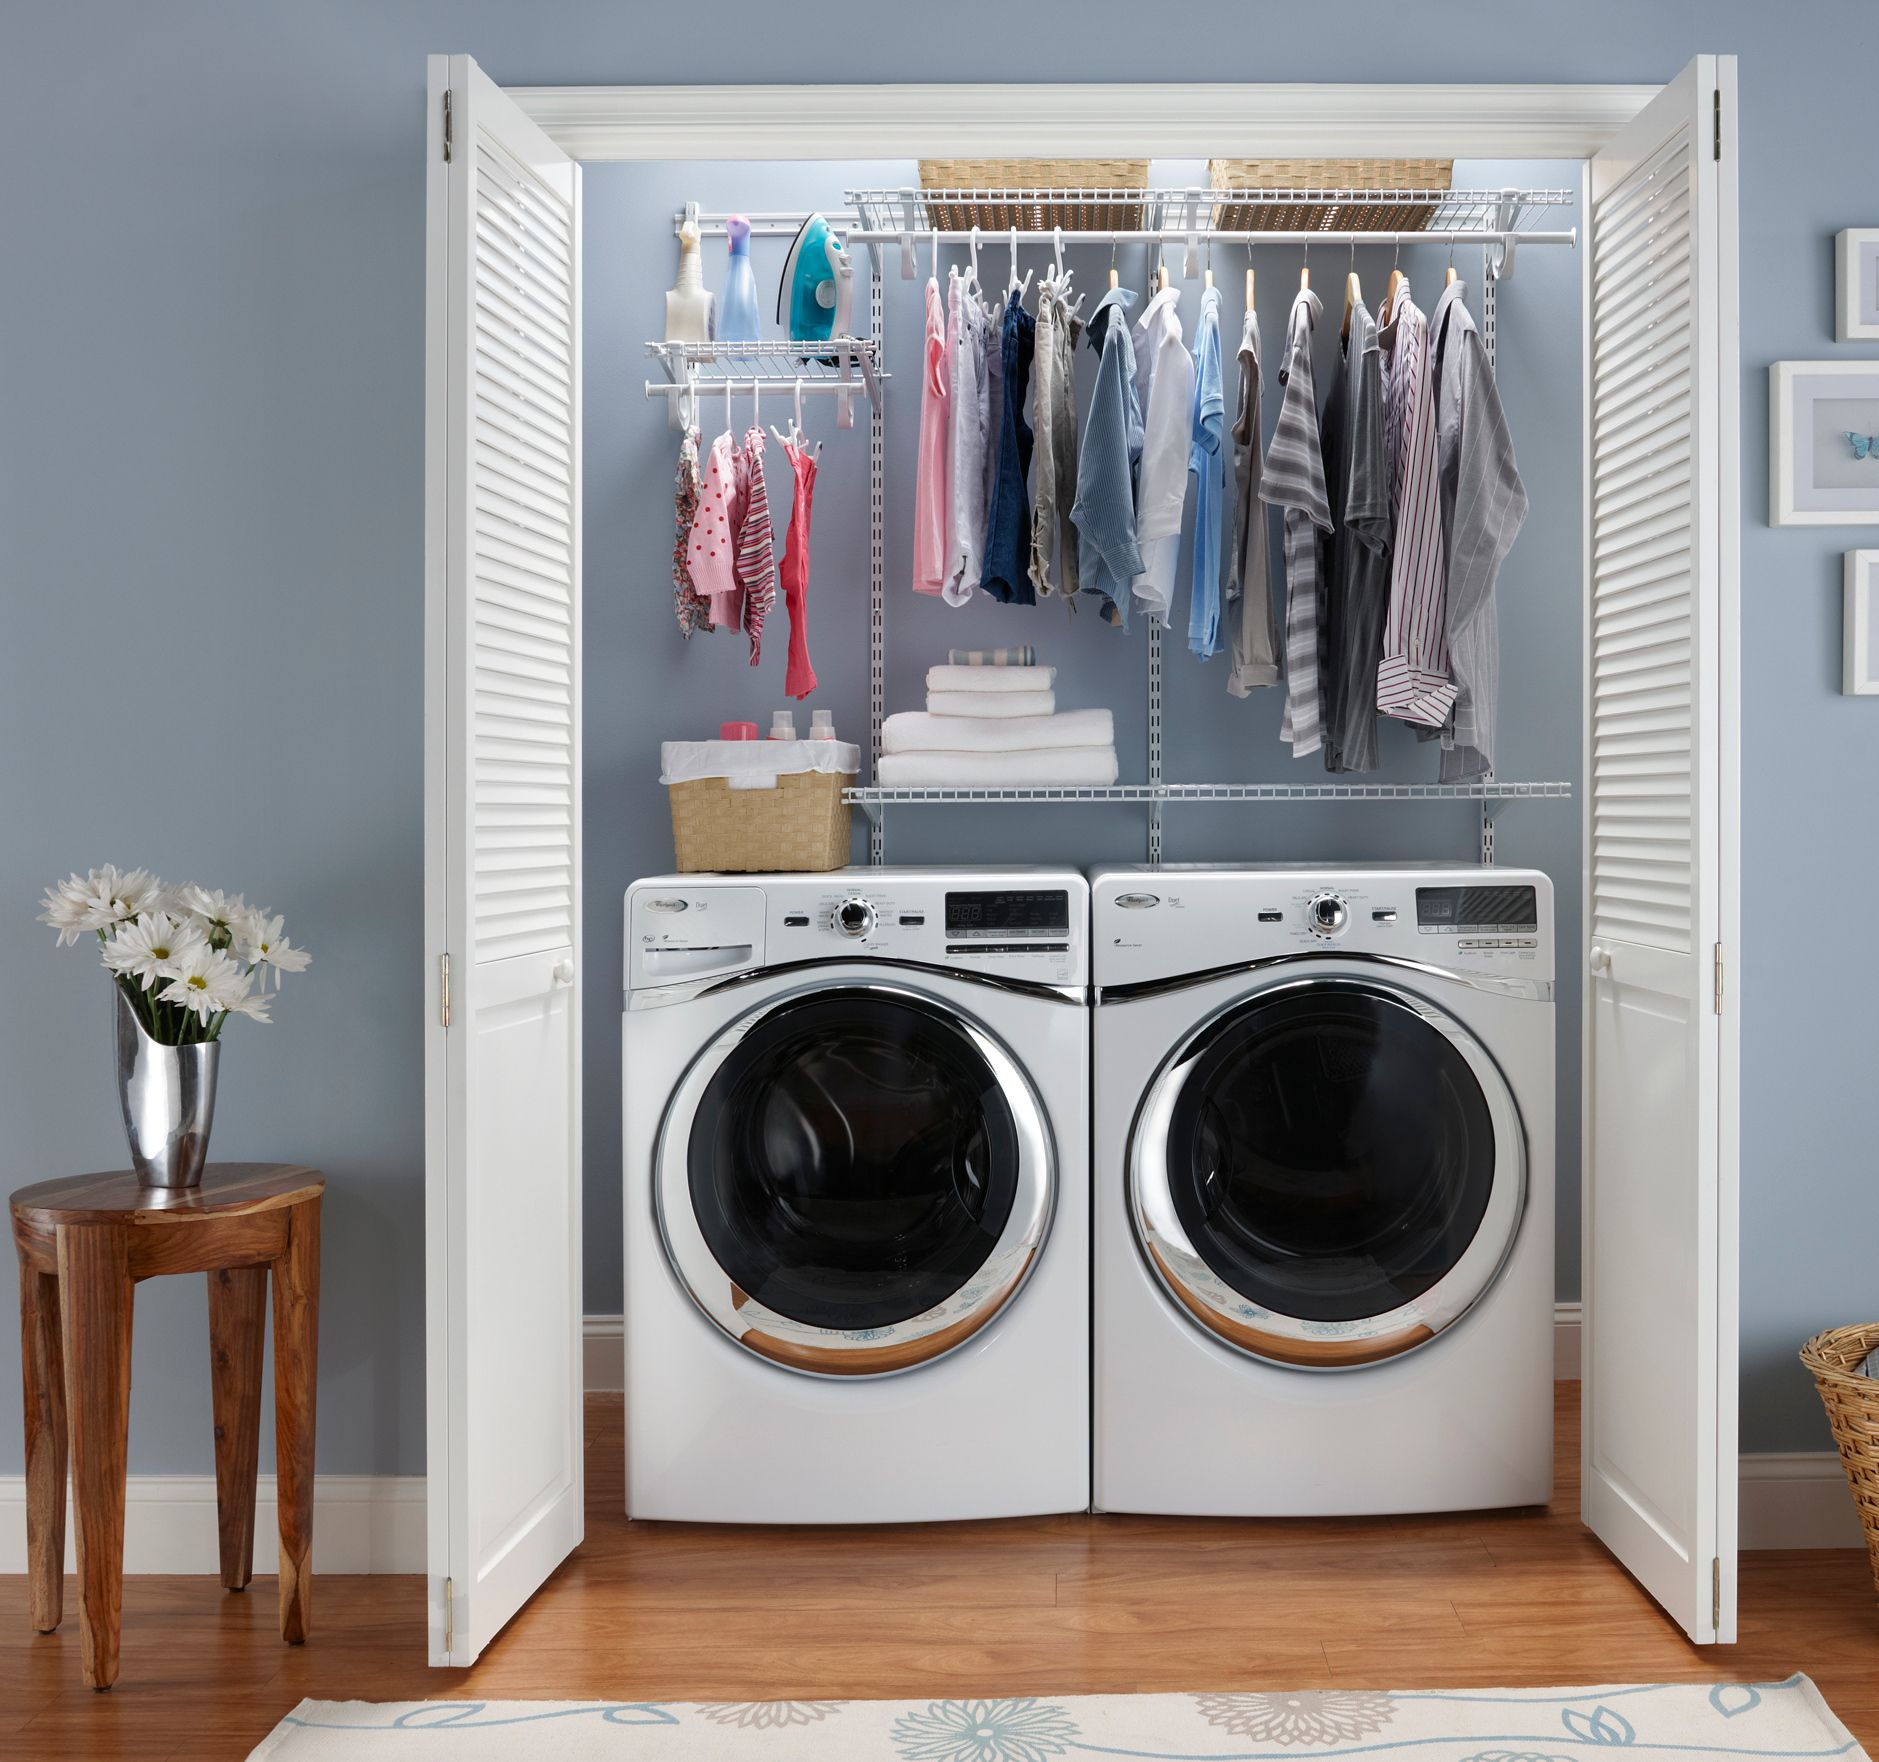 laundry room storage is one click away! find this exact shelftrack